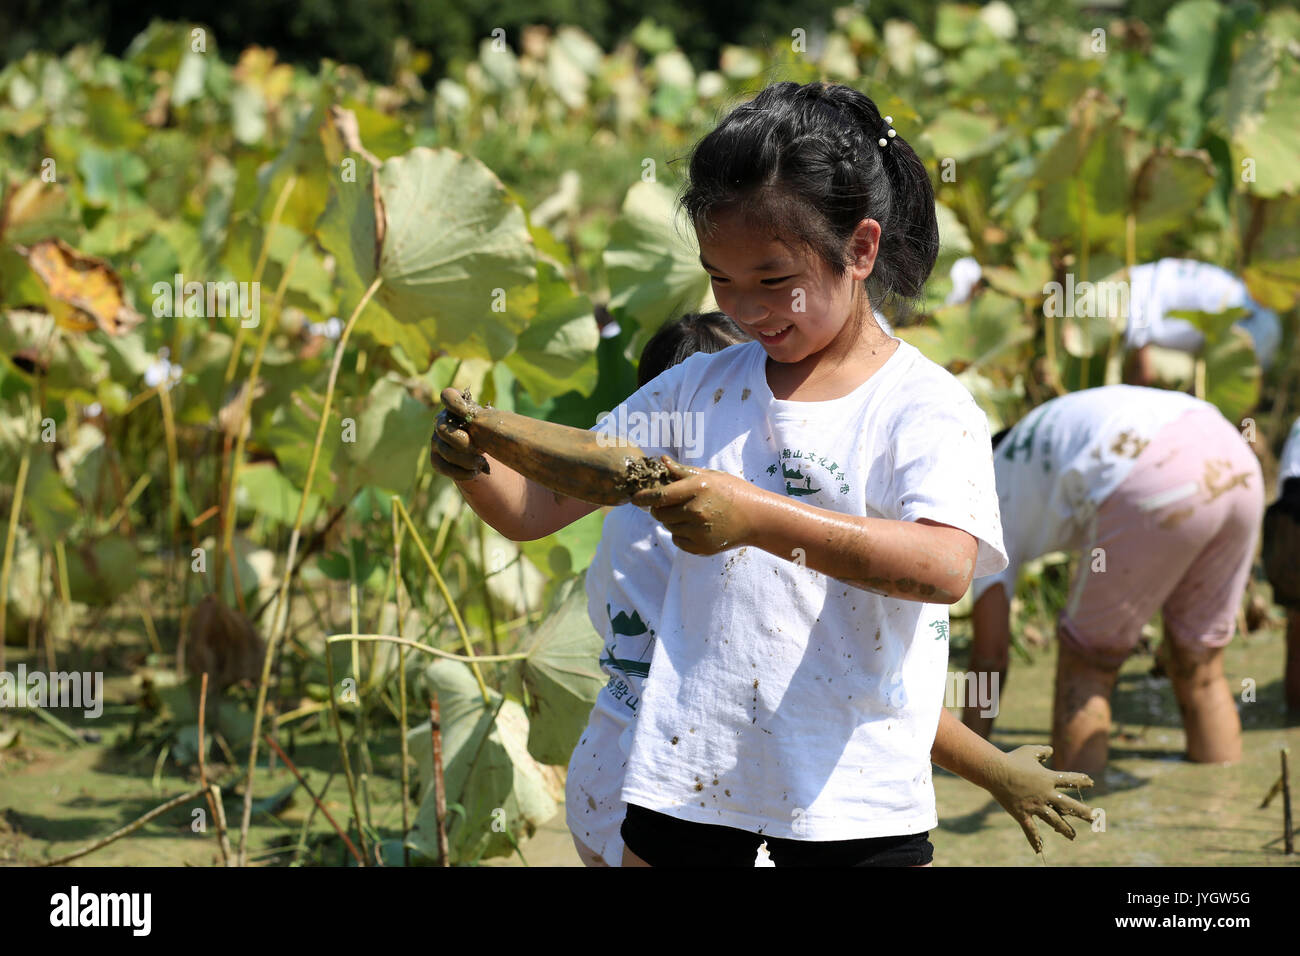 Hengyang, China's Hunan Province. 19th Aug, 2017. A children collects the lotus root at a summer camp in Hengyang, central China's Hunan Province, Aug. 19, 2017. Various extracurricular activities attracted many young students in China in the summer vacation time. Credit: Liu Xinrong/Xinhua/Alamy Live News - Stock Image